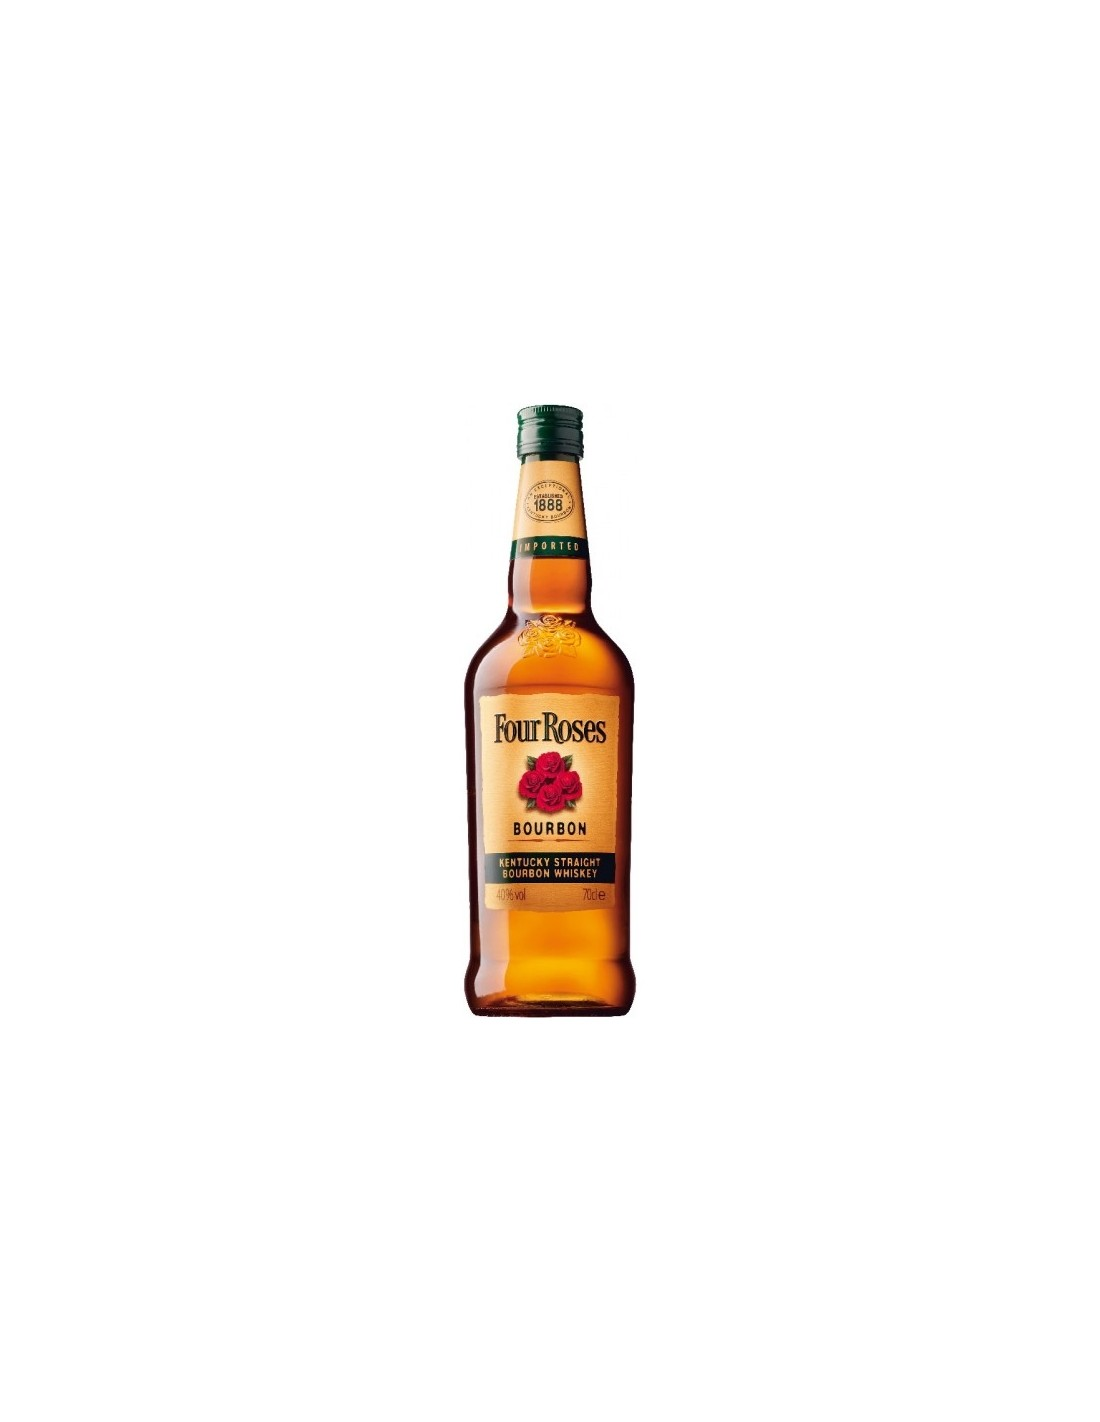 Whisky Single Malt Bourbon Four Roses, 40% alc., 0.7L